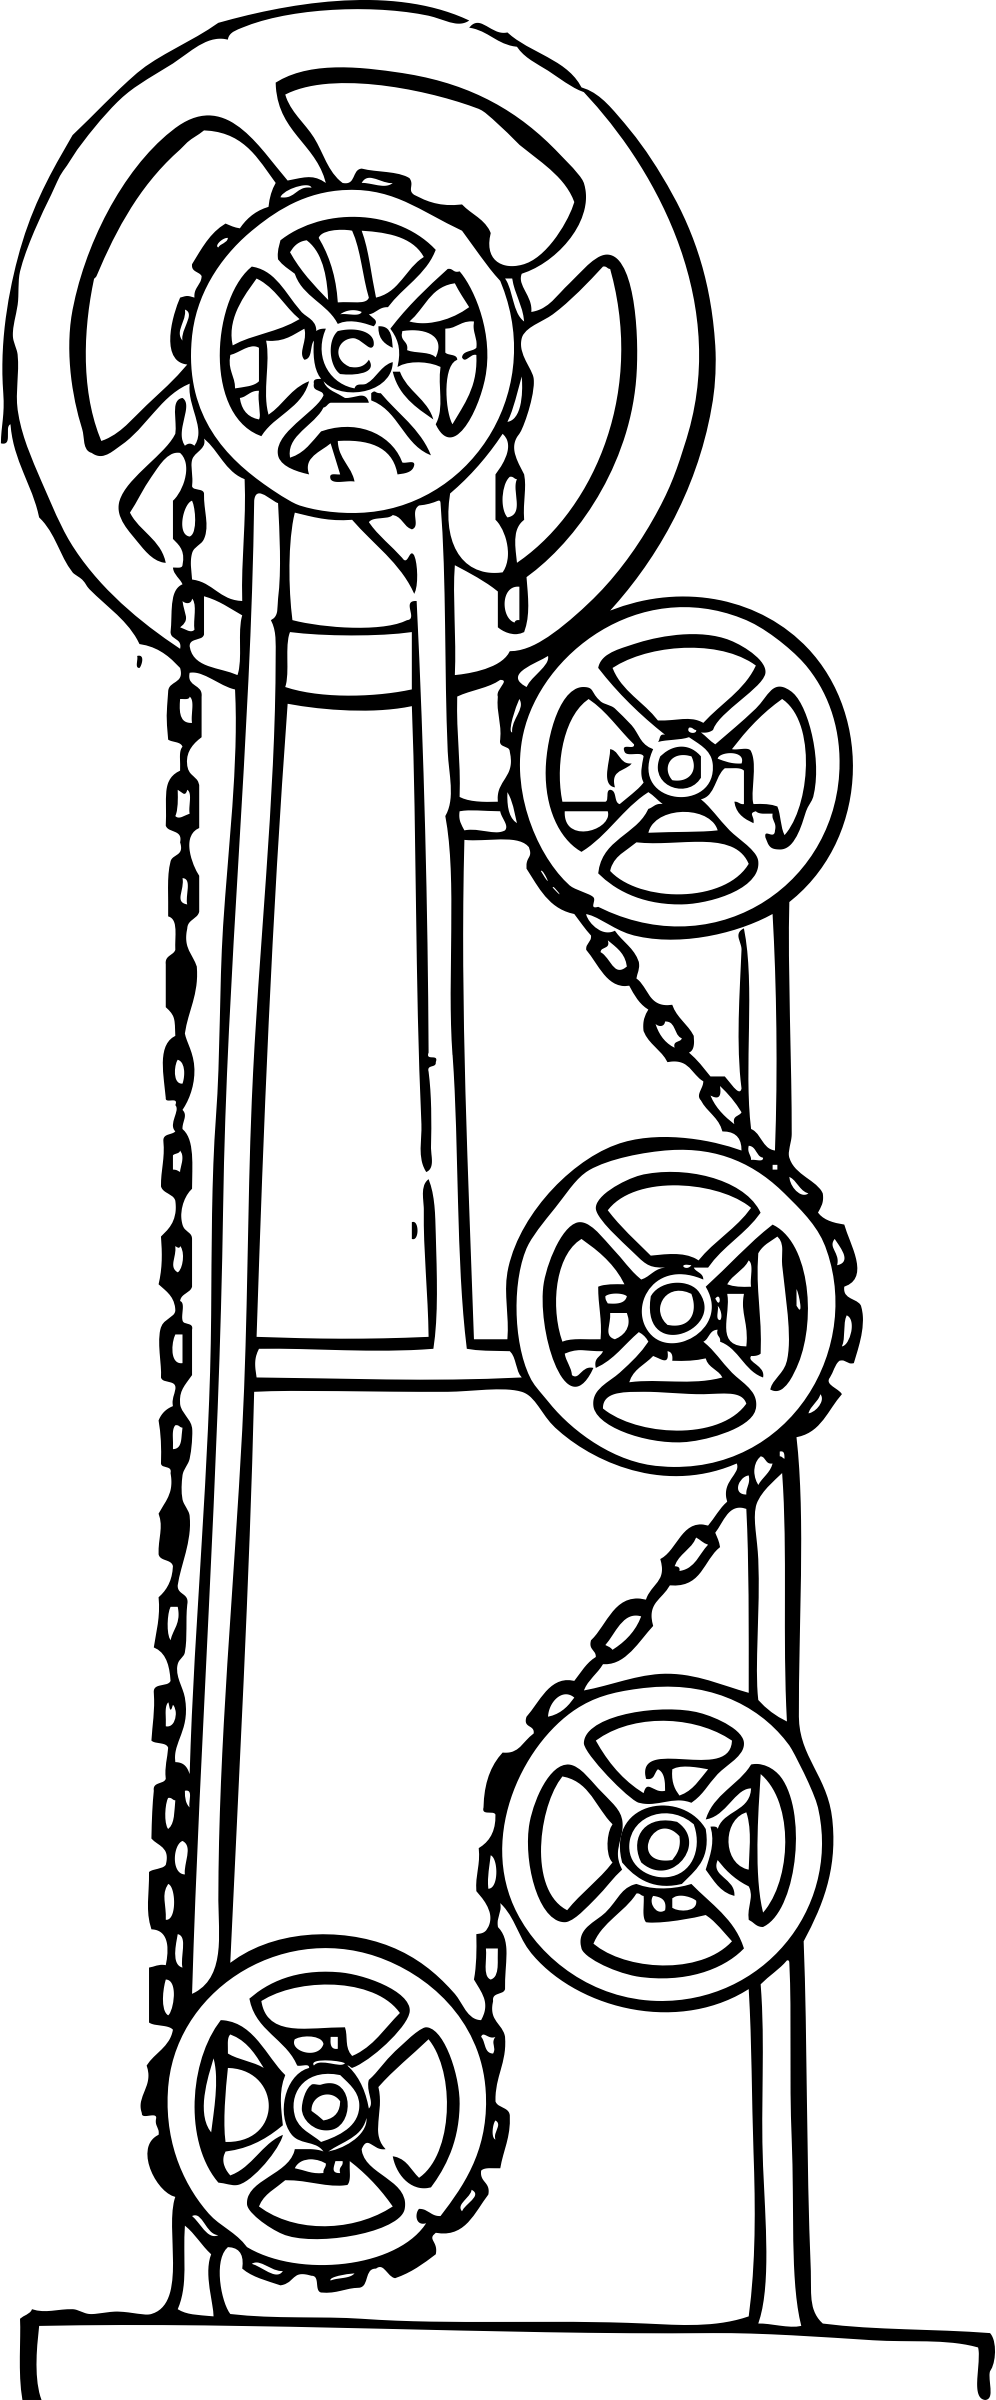 perpetual motion device by johnny_automatic